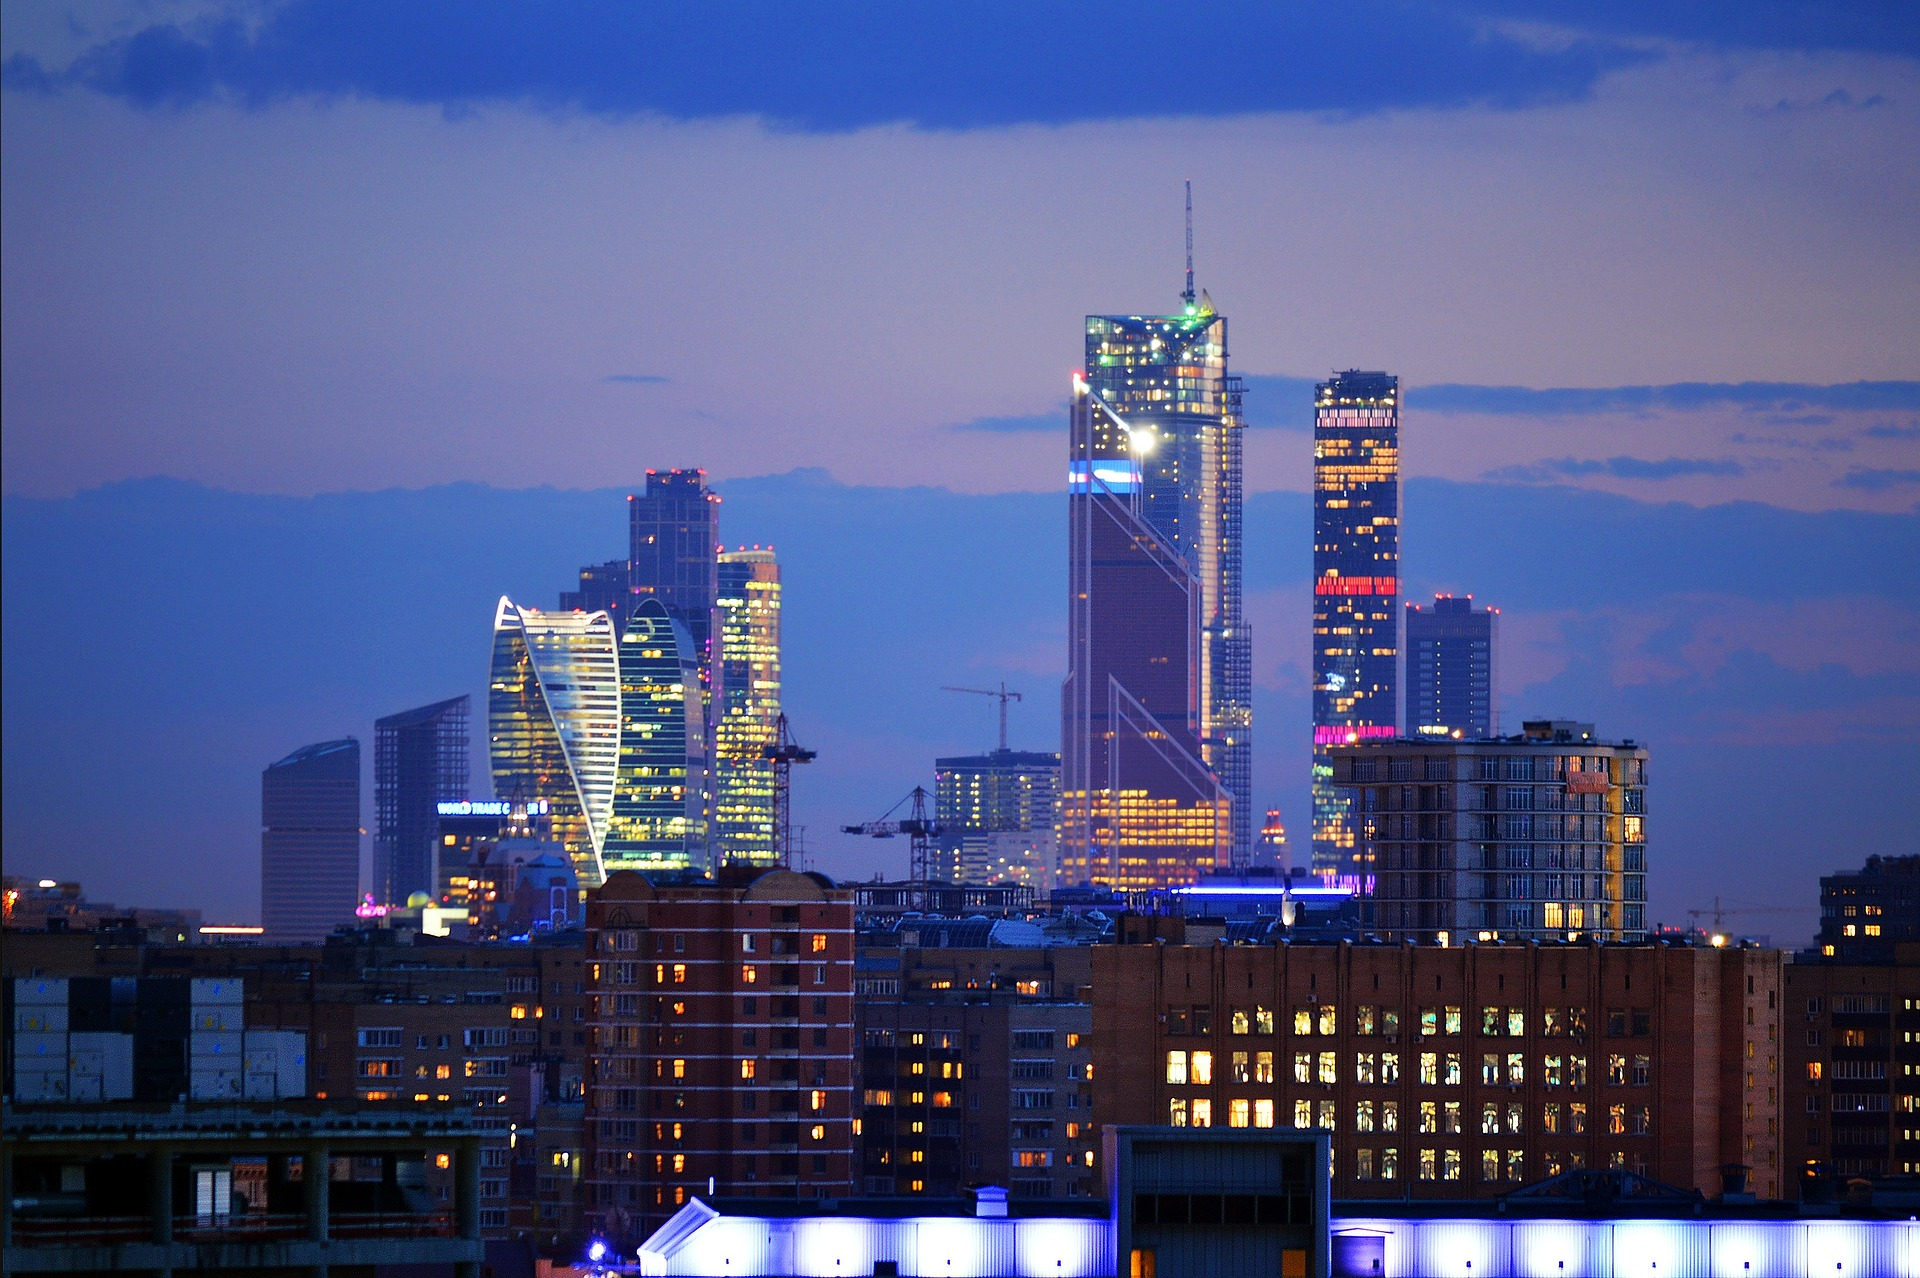 Moscow City, Moscow, Russia at night